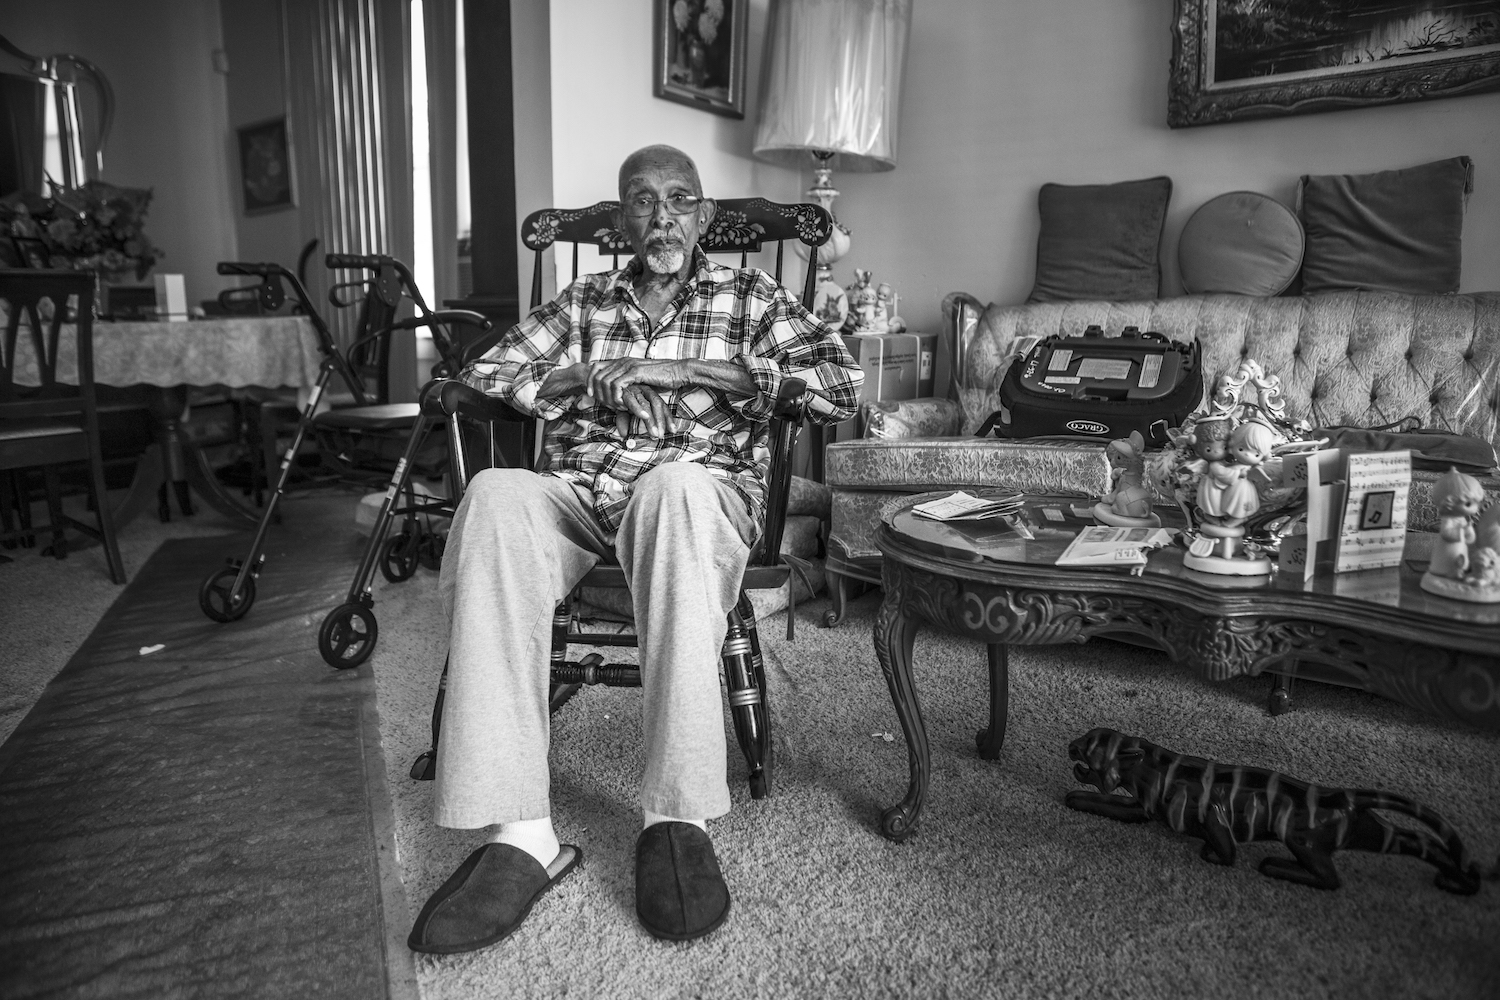 Thomas Kelly, 105. Former WWI and WWII veteran, U.S Army. Manager and lead singer for the Masters of Harmony Quartet. © Janice Milhem